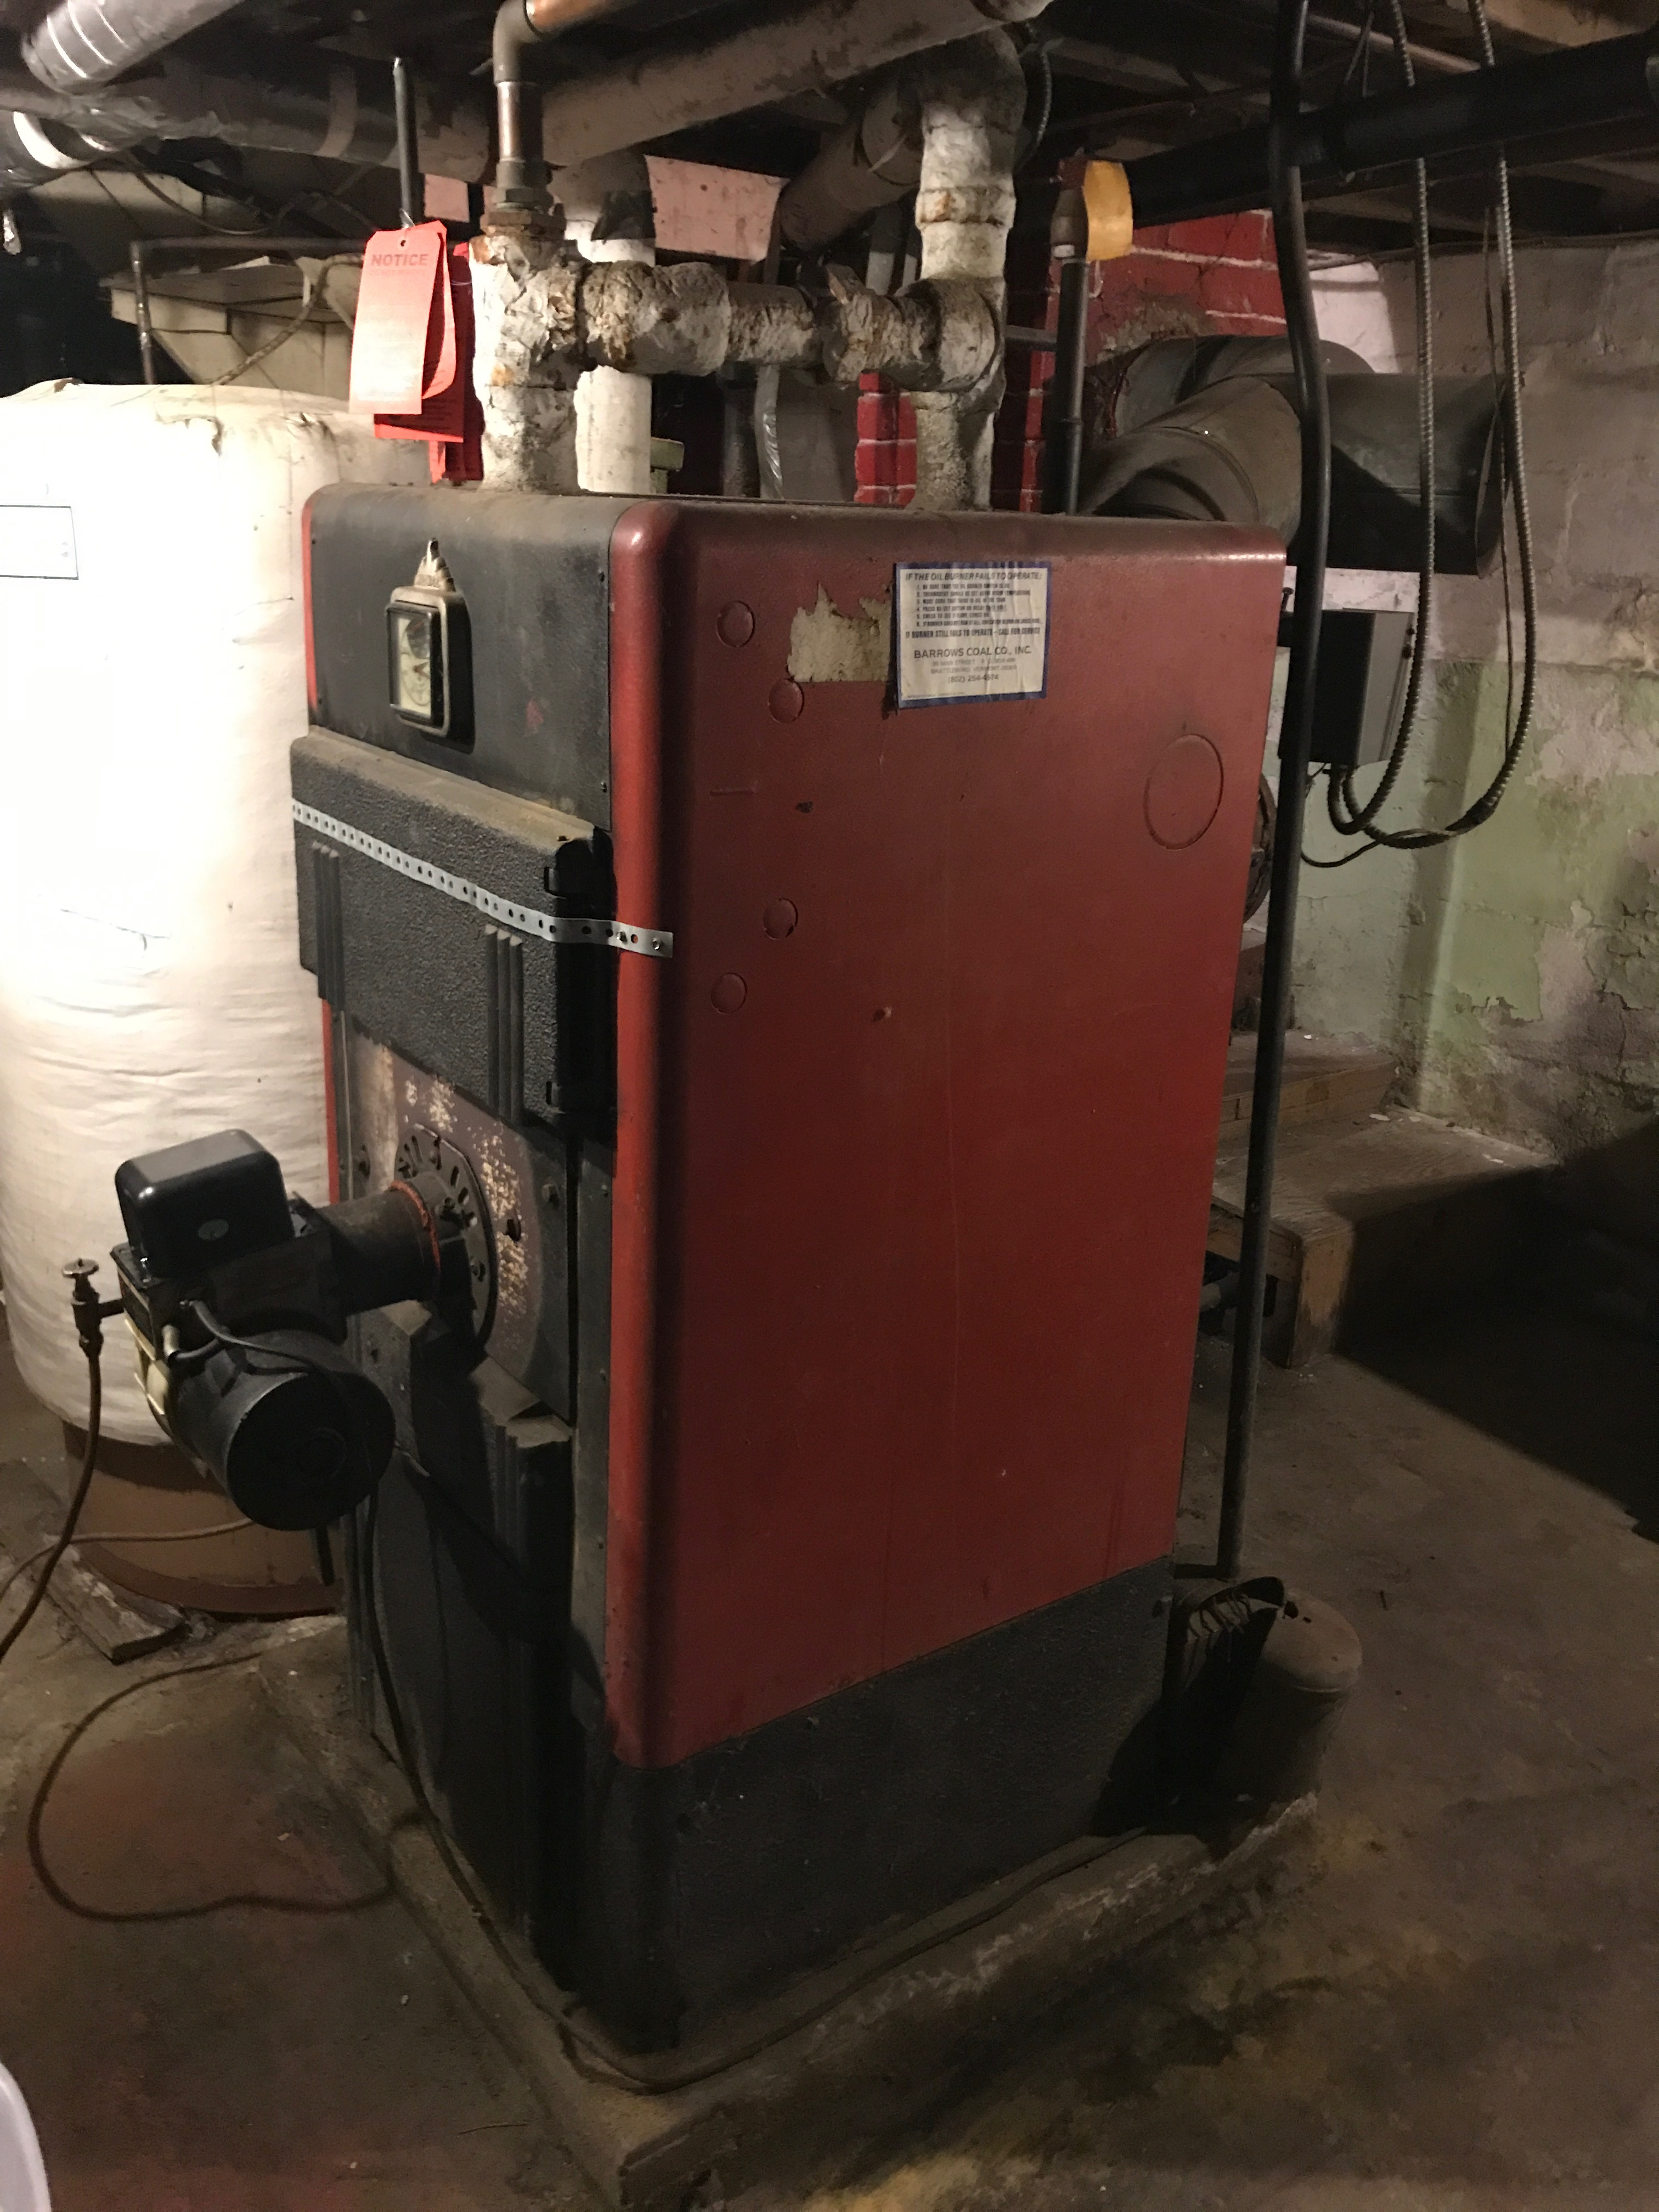 Old Steam Boiler With Attic Expansion Tank Losing Water